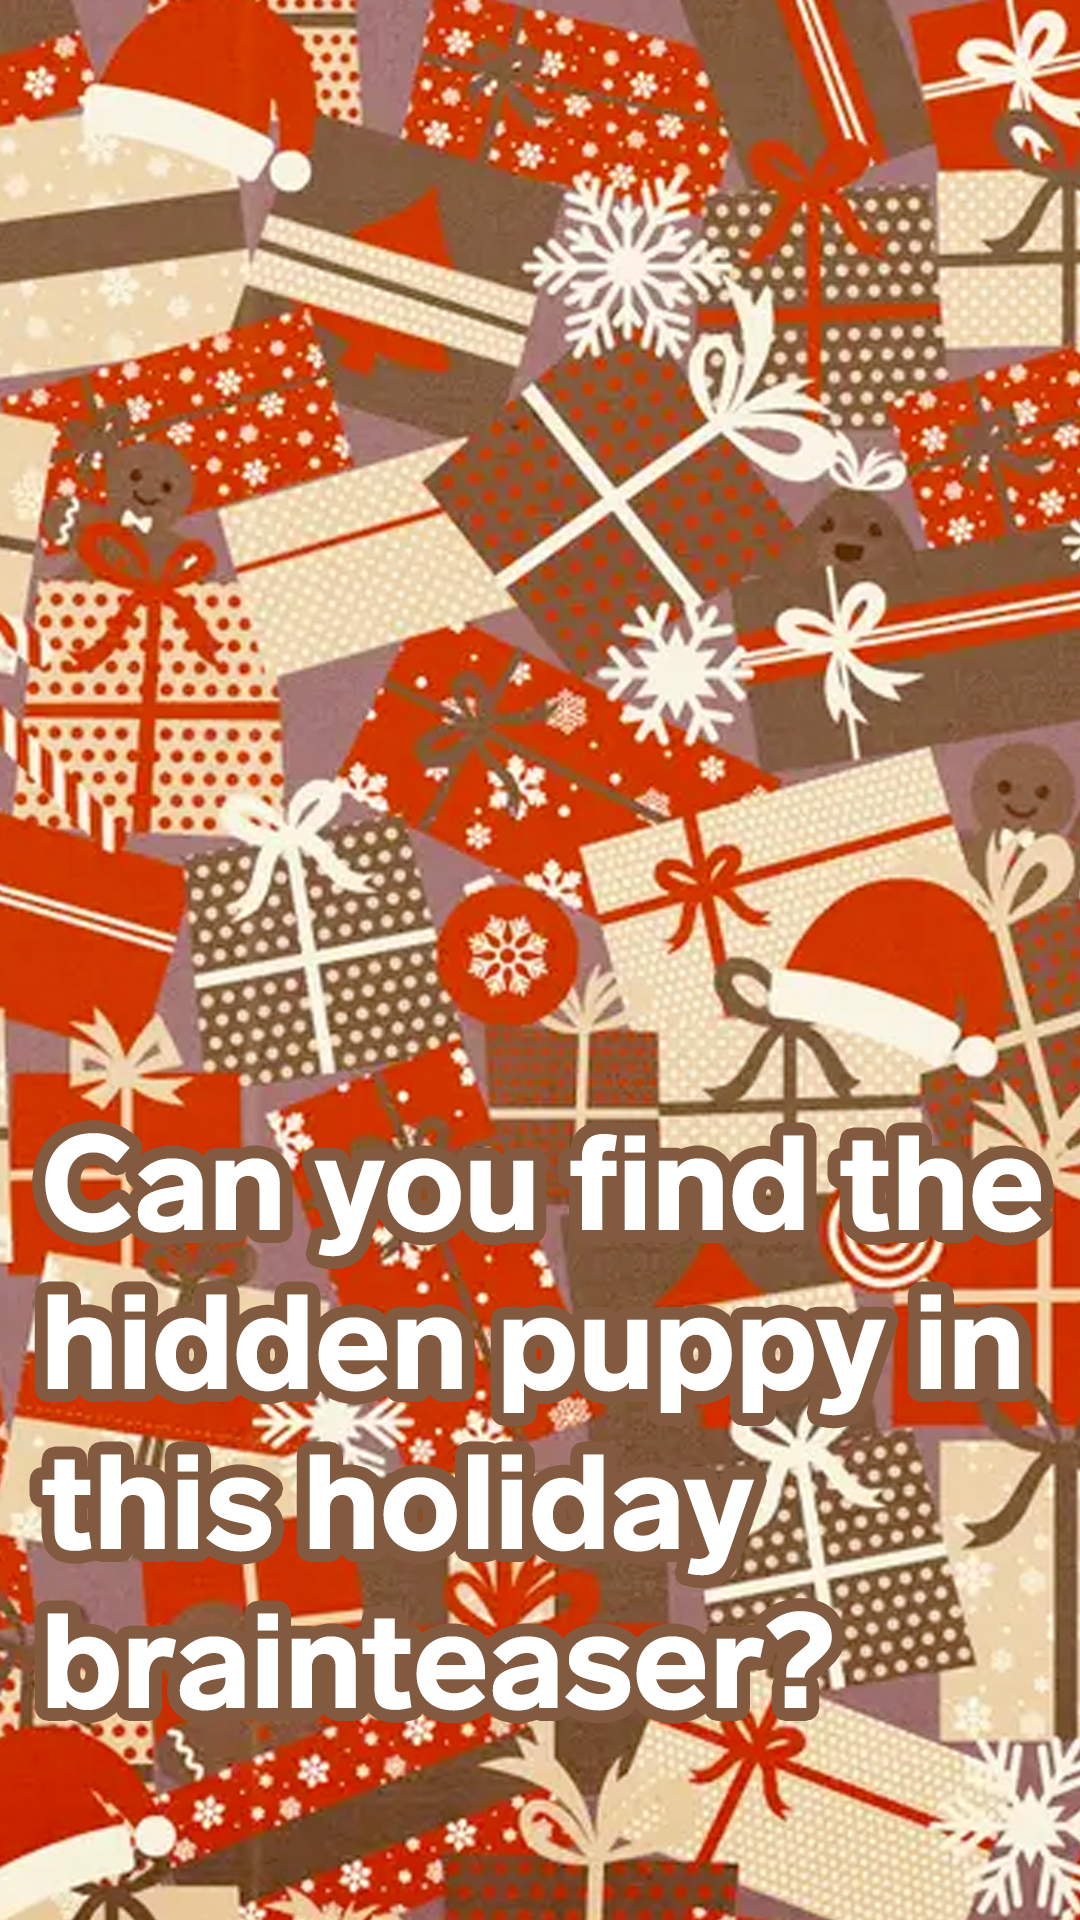 Can you find the hidden puppy in this holiday brainteaser